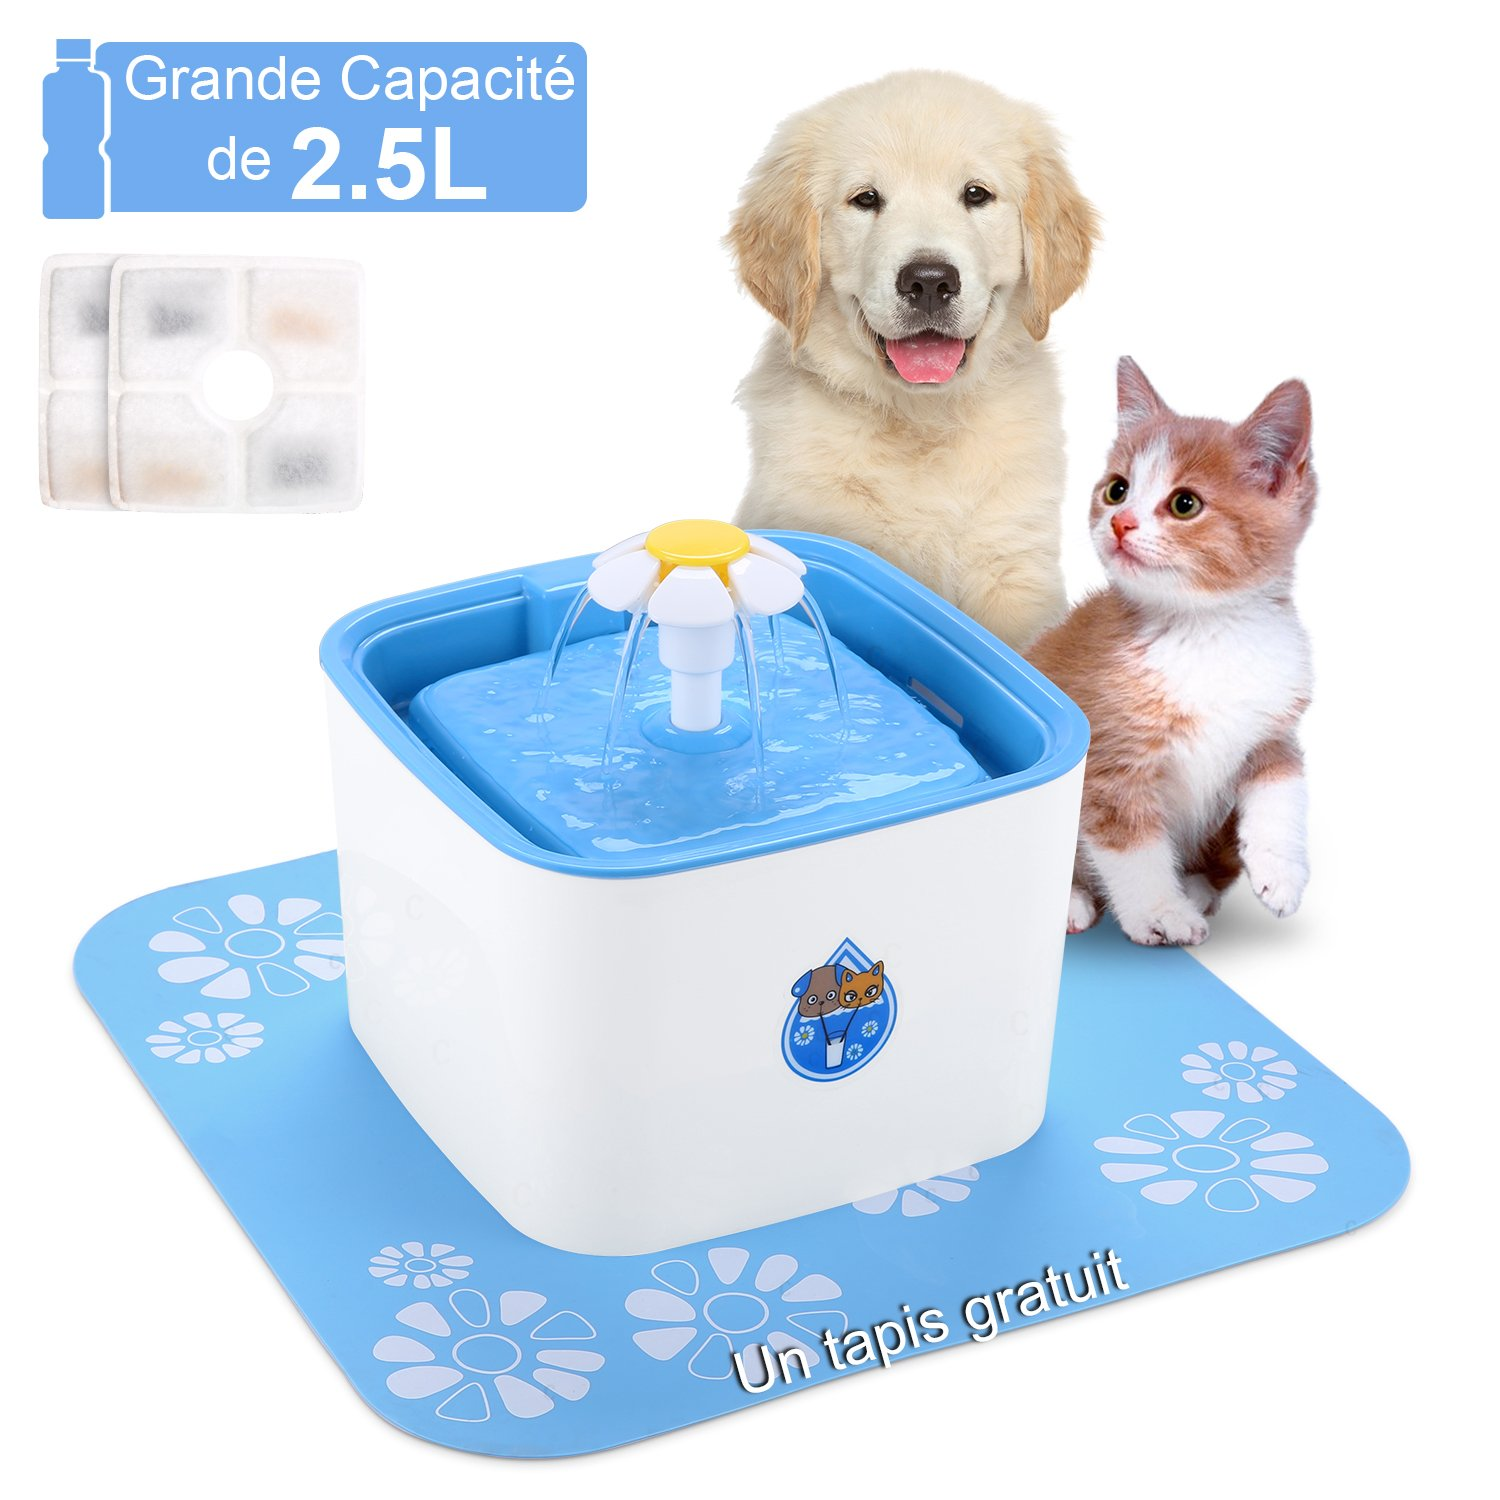 Dishes, Feeders & Fountains Pet Supplies Filtres Pour Fontaine à Eau Petsafe Drinkwell Chien Chat Animal Animaux Lot X10 Buy One Get One Free